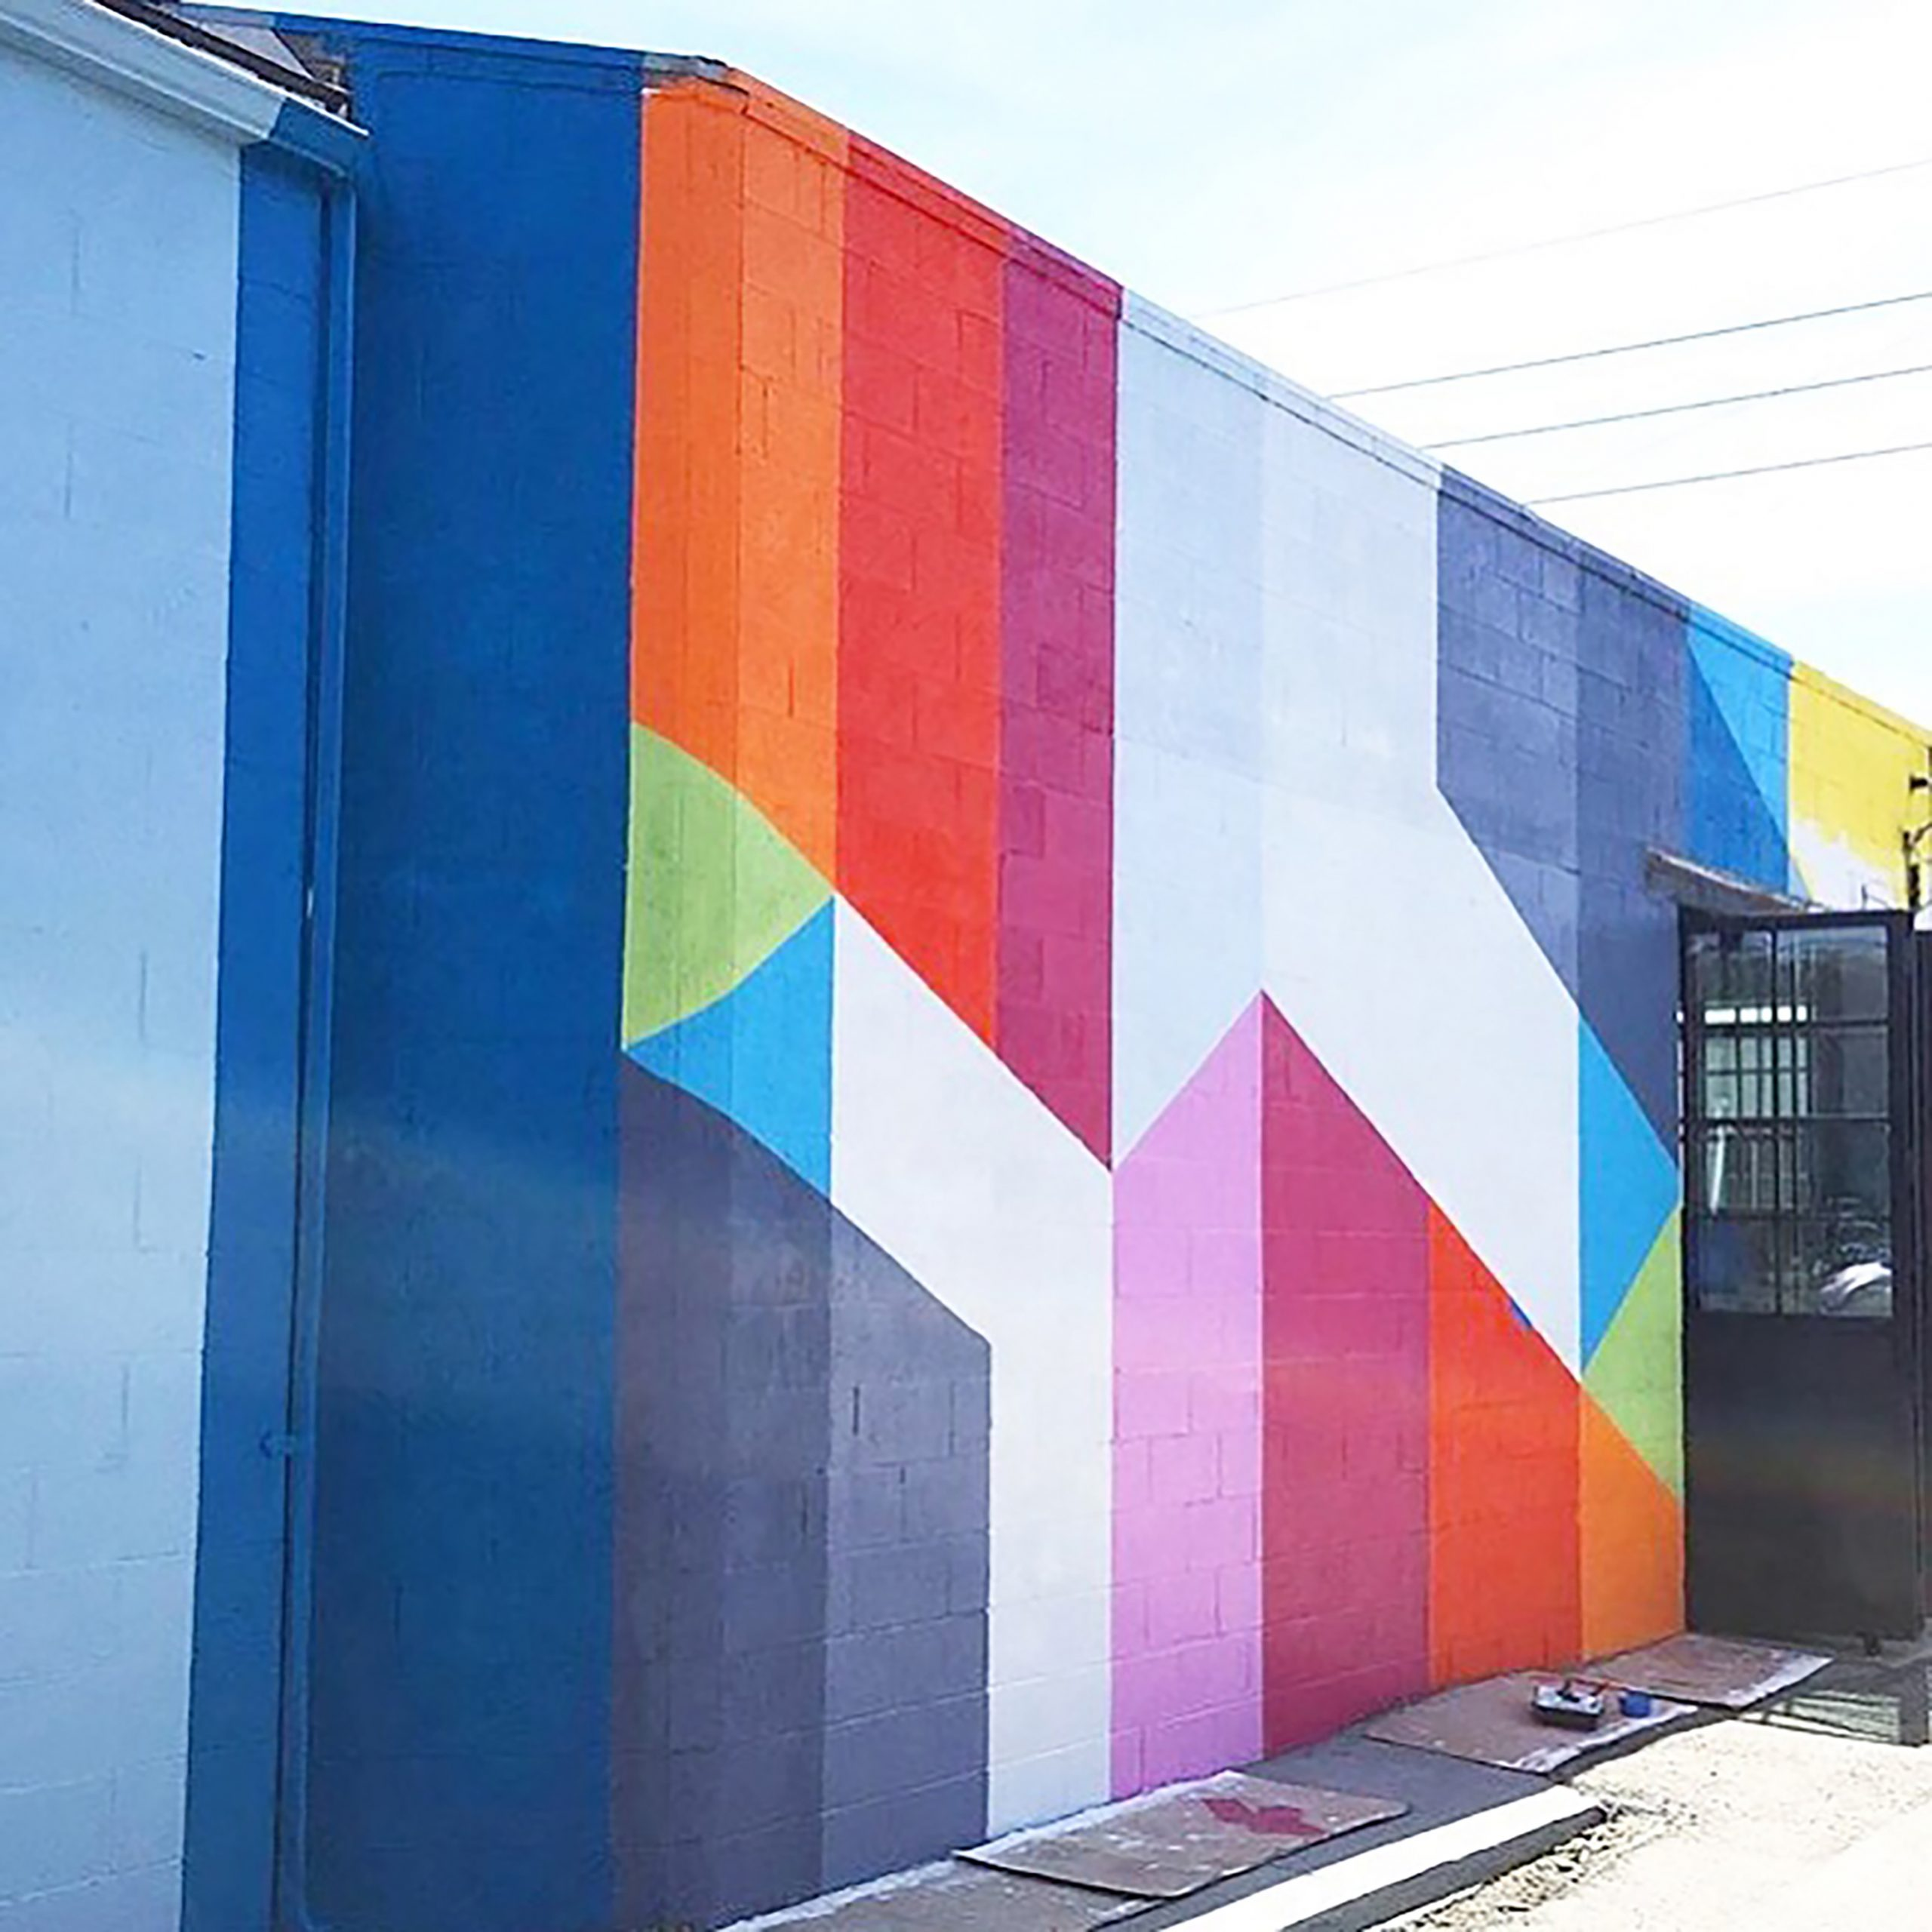 Colourful geometric striped mural covering the wall of a two story building